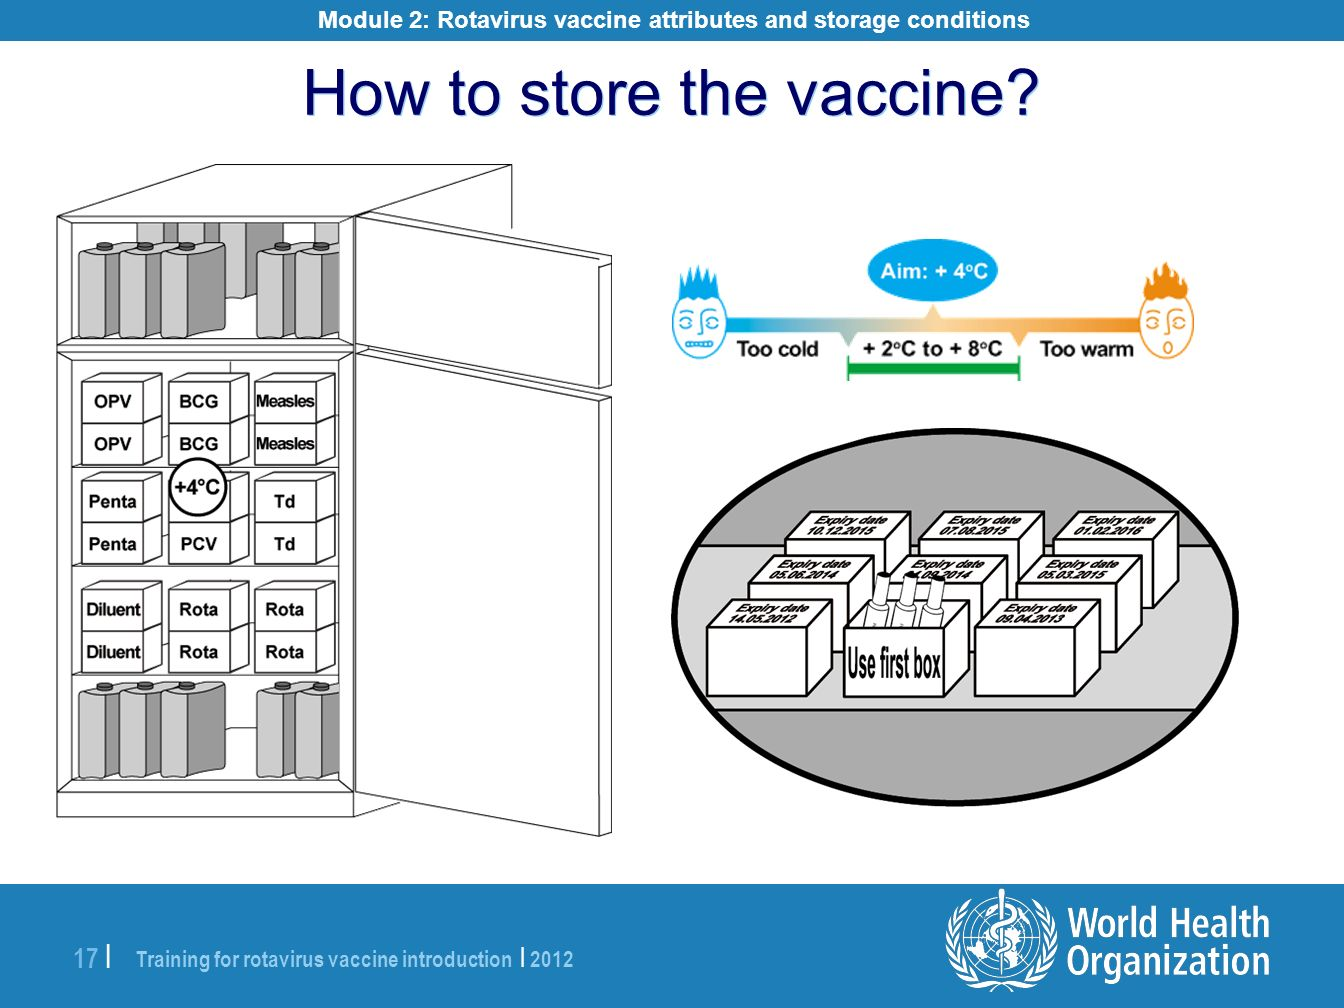 Module 2: Rotavirus vaccine attributes and storage conditions